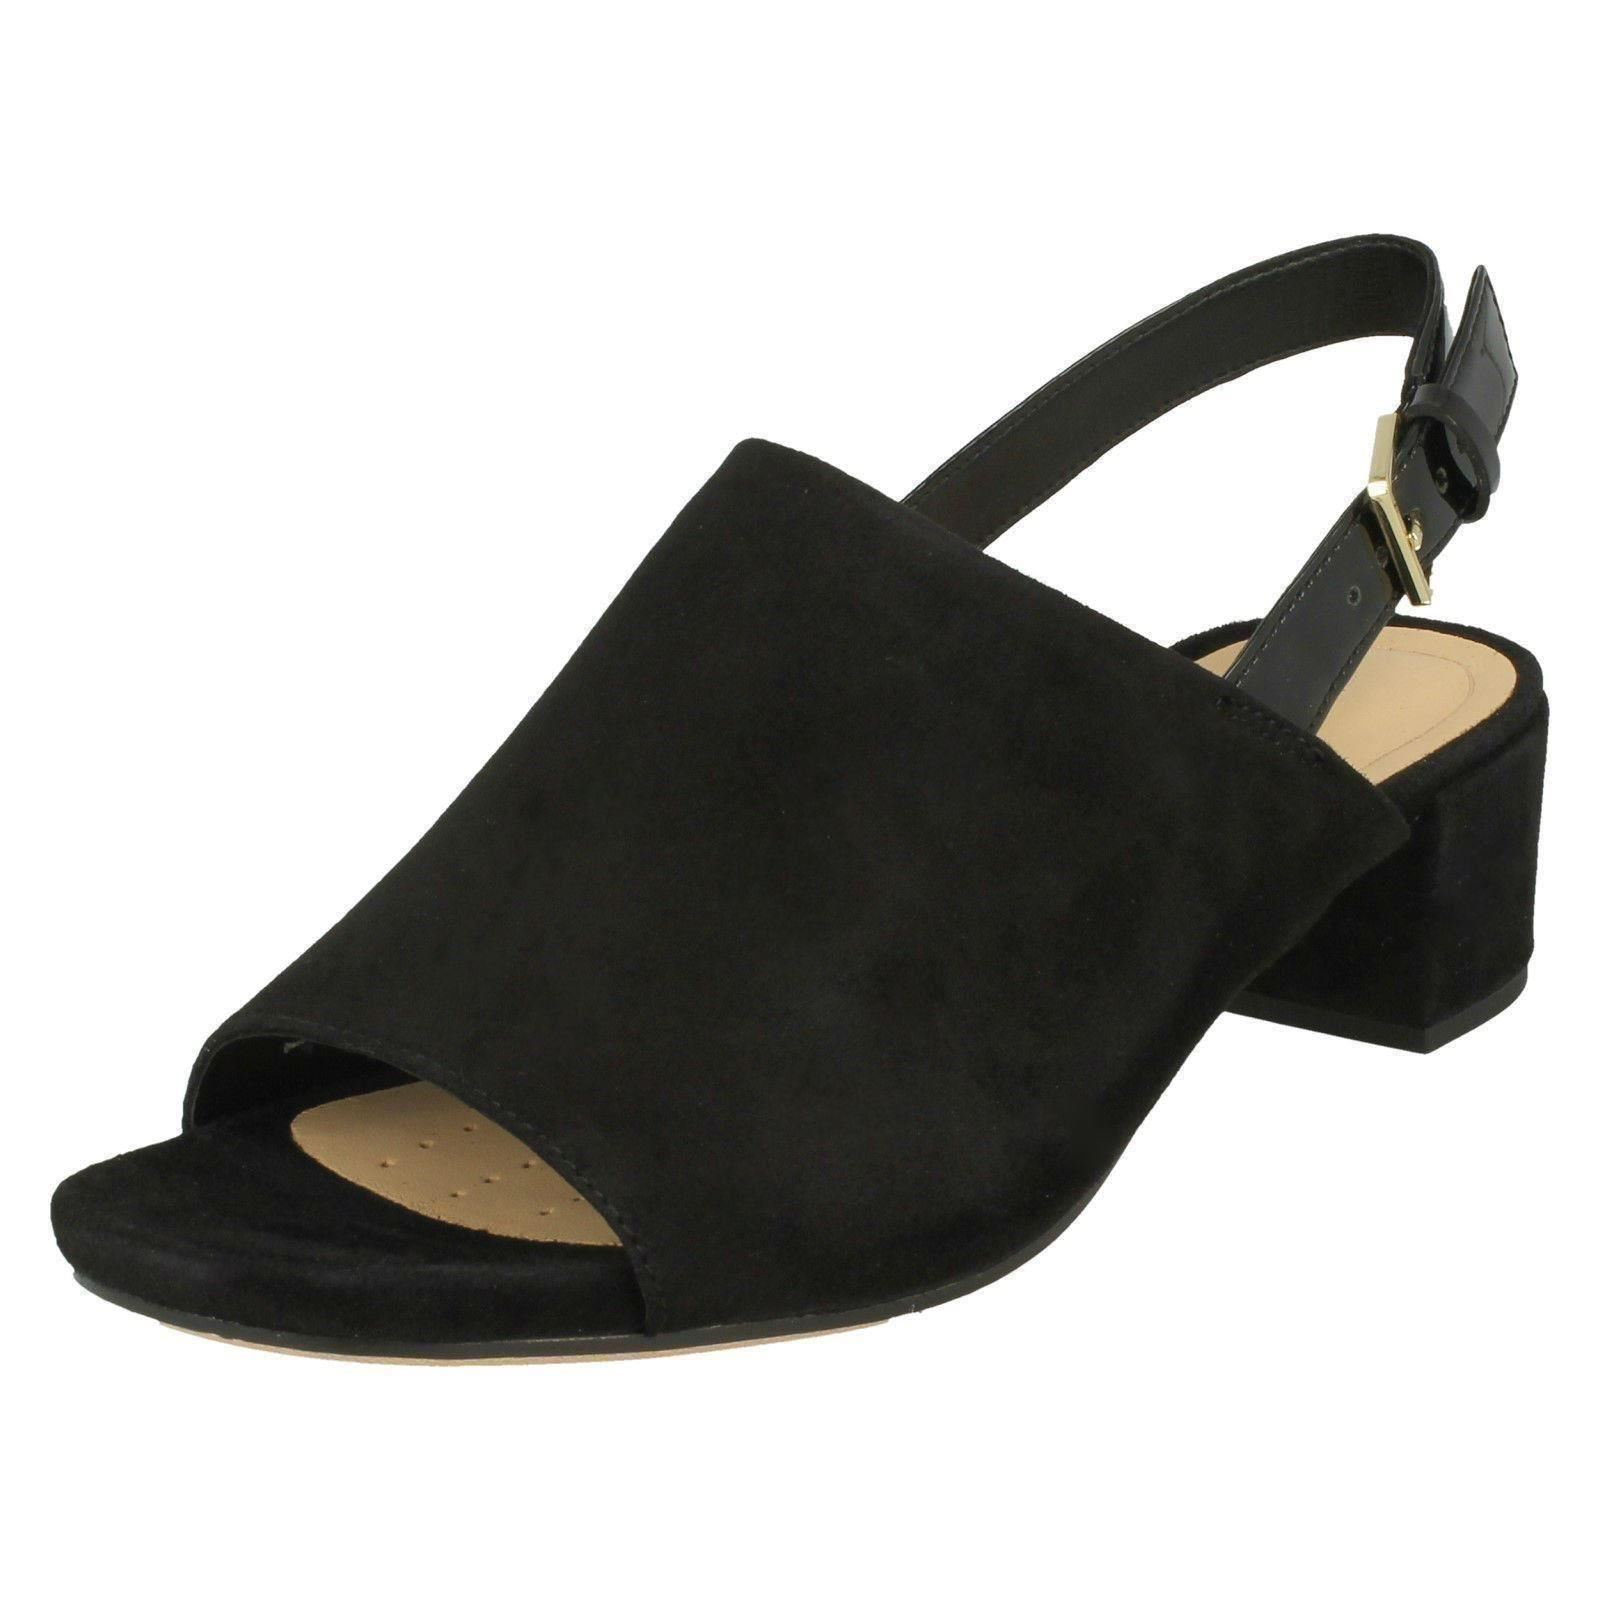 69ef5959e569 Women s Clarks Orabella Ivy Sandals in Black UK 4   EU 37. About this  product. Picture 1 of 10  Picture 2 of 10 ...